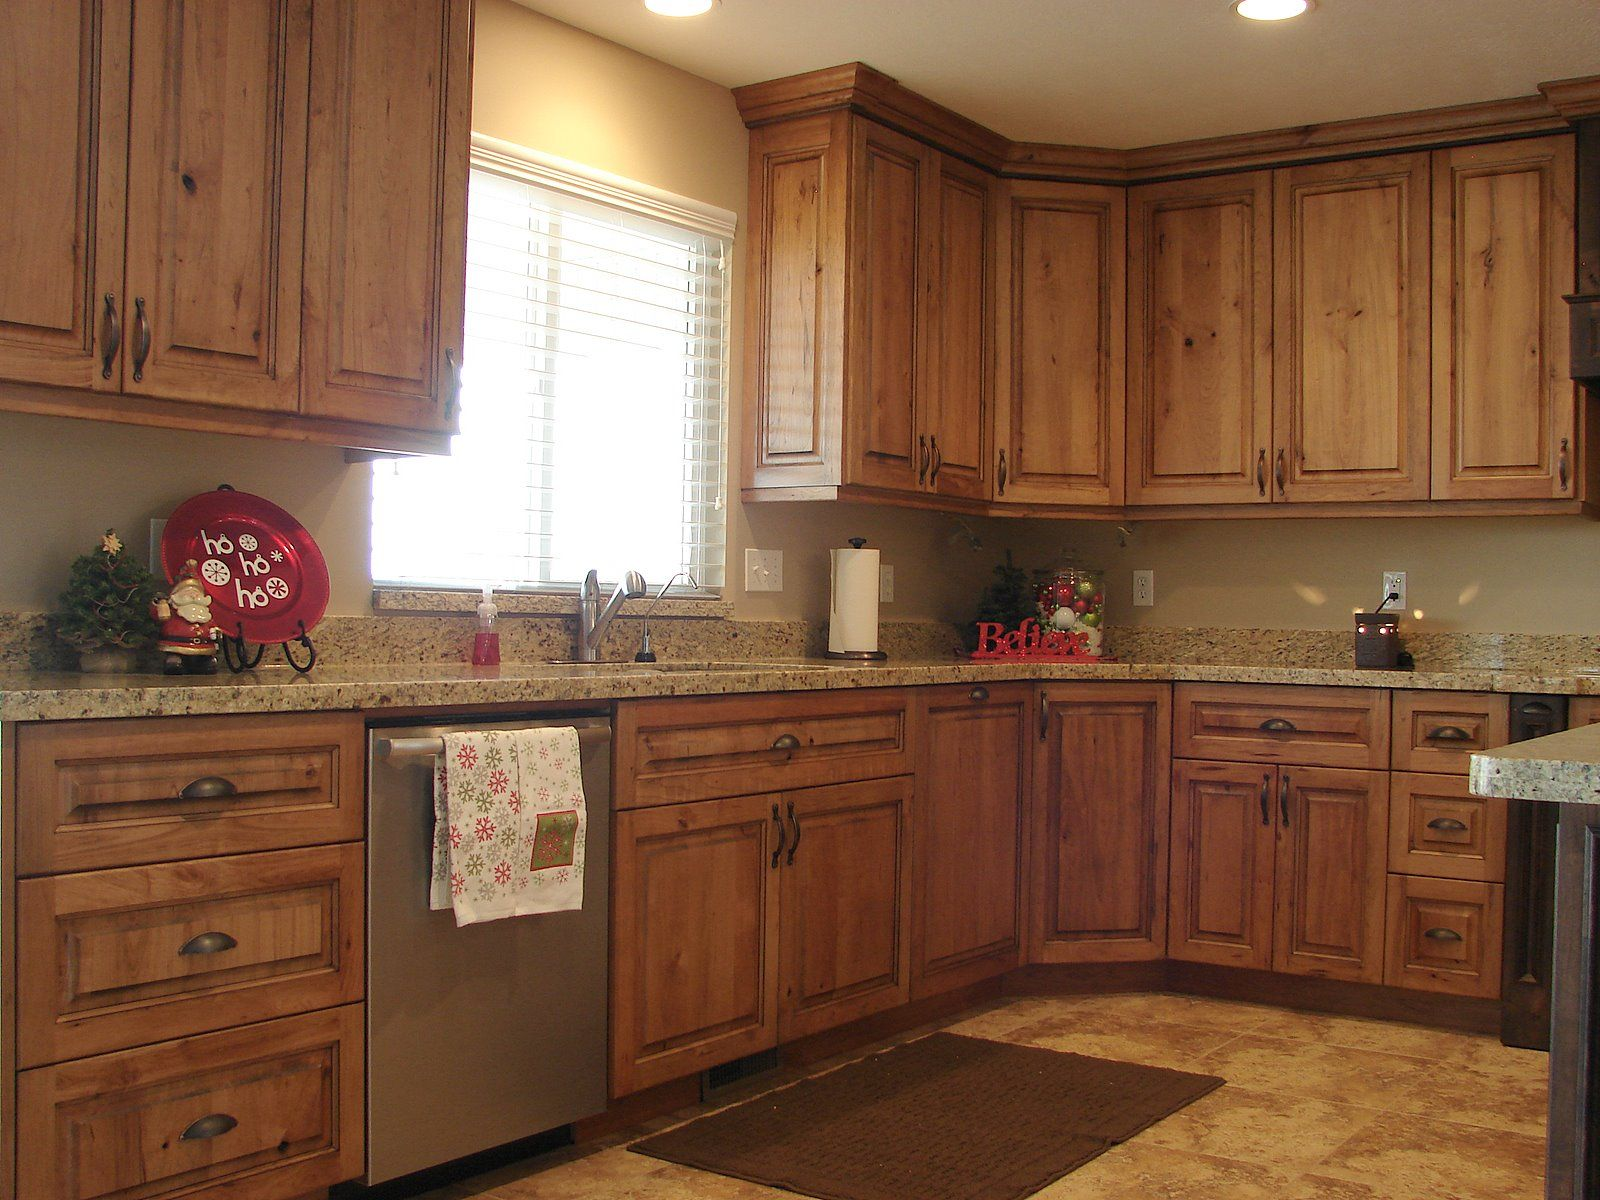 Rustic Cherry Cabinets Rustic Kitchen Cabinets Rustic Cherry Cabinets Rustic Kitchen Design